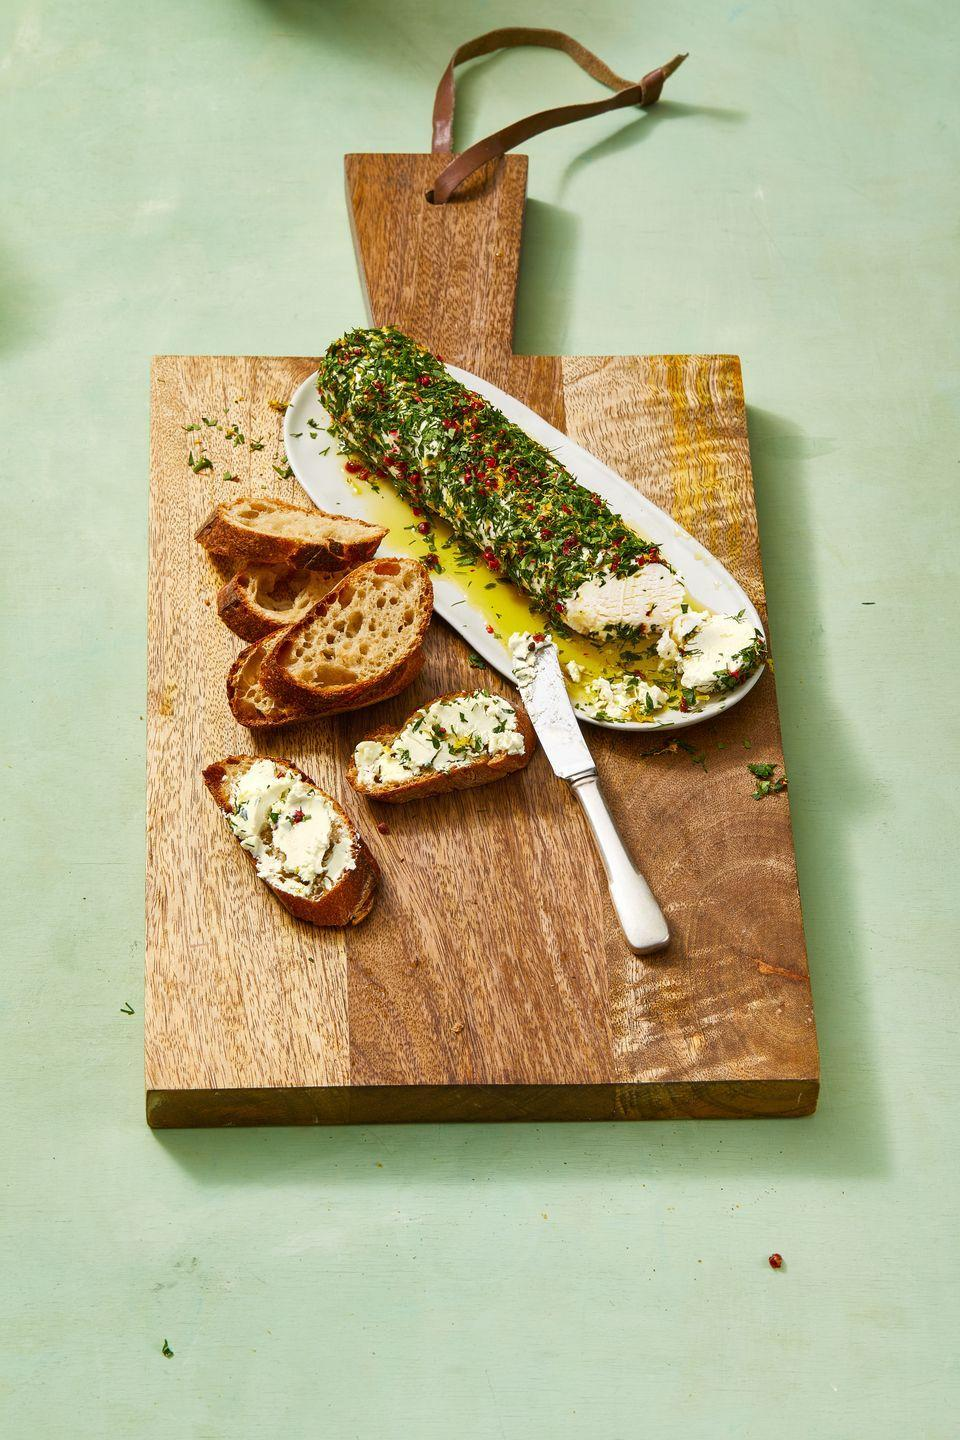 """<p>Roll a goat cheese log in fresh herbs, lemon zest and peppercorns for the easiest-ever appetizer that looks super fancy.</p><p><em><a href=""""https://www.goodhousekeeping.com/food-recipes/easy/a30655780/goat-cheese-appetizer-recipe/"""" rel=""""nofollow noopener"""" target=""""_blank"""" data-ylk=""""slk:Get the recipe for Lemon-Herb Goat Cheese Log »"""" class=""""link rapid-noclick-resp"""">Get the recipe for Lemon-Herb Goat Cheese Log »</a></em></p><p><strong>RELATED: </strong><a href=""""https://www.goodhousekeeping.com/food-recipes/easy/g122/easy-appetizers/"""" rel=""""nofollow noopener"""" target=""""_blank"""" data-ylk=""""slk:51 Easy Appetizers and Snacks to Get the Party Started"""" class=""""link rapid-noclick-resp"""">51 Easy Appetizers and Snacks to Get the Party Started</a><br></p>"""